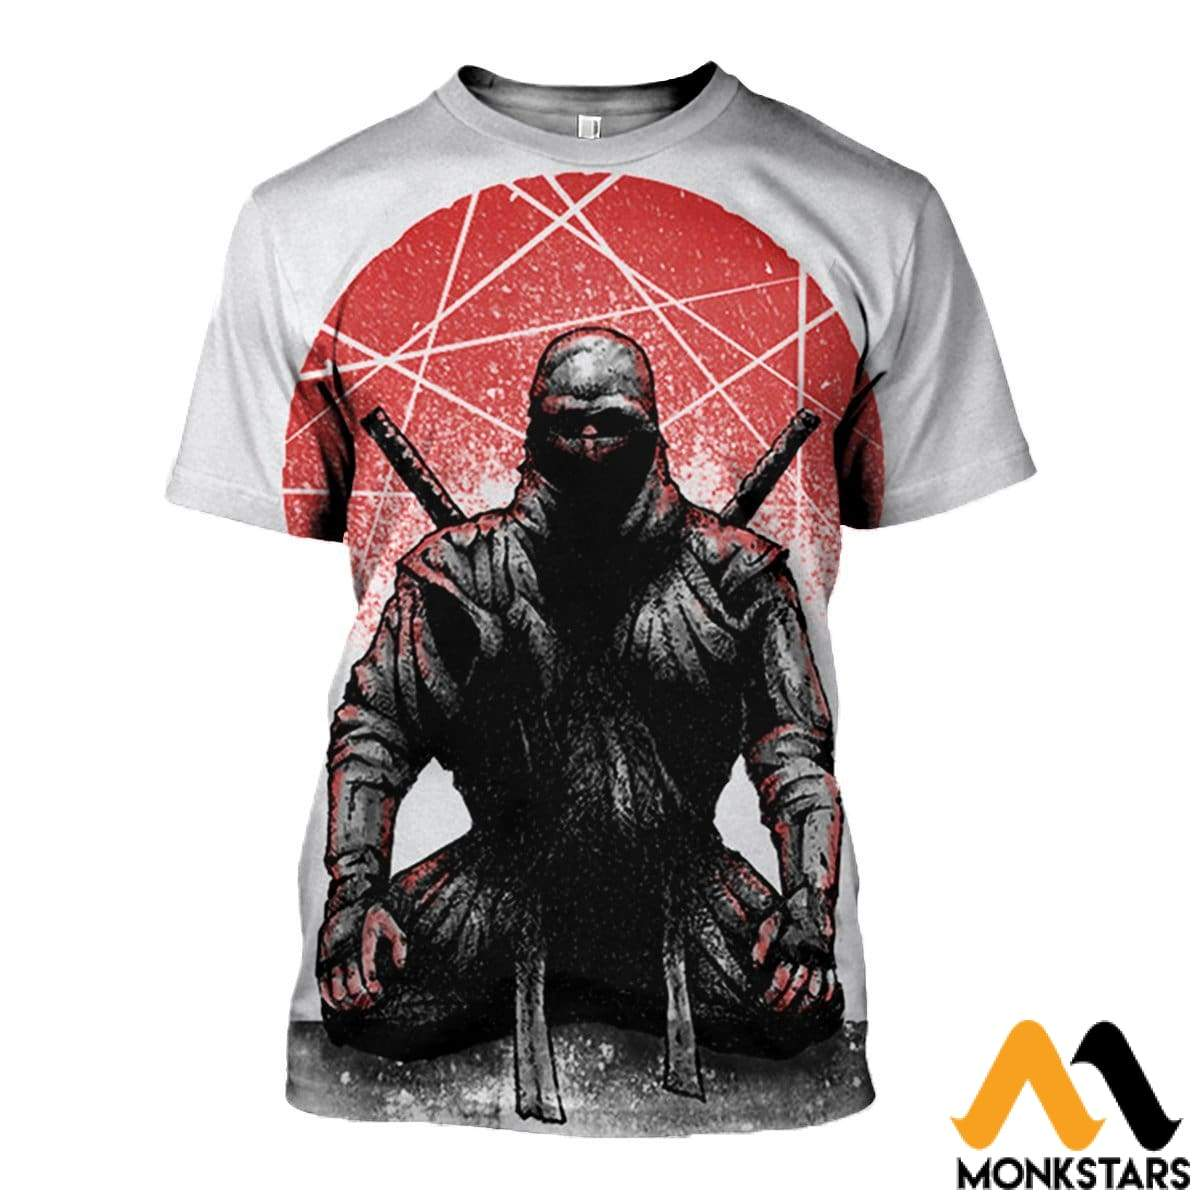 3D All Over Printed Ninja Clothes T-Shirt / Xs